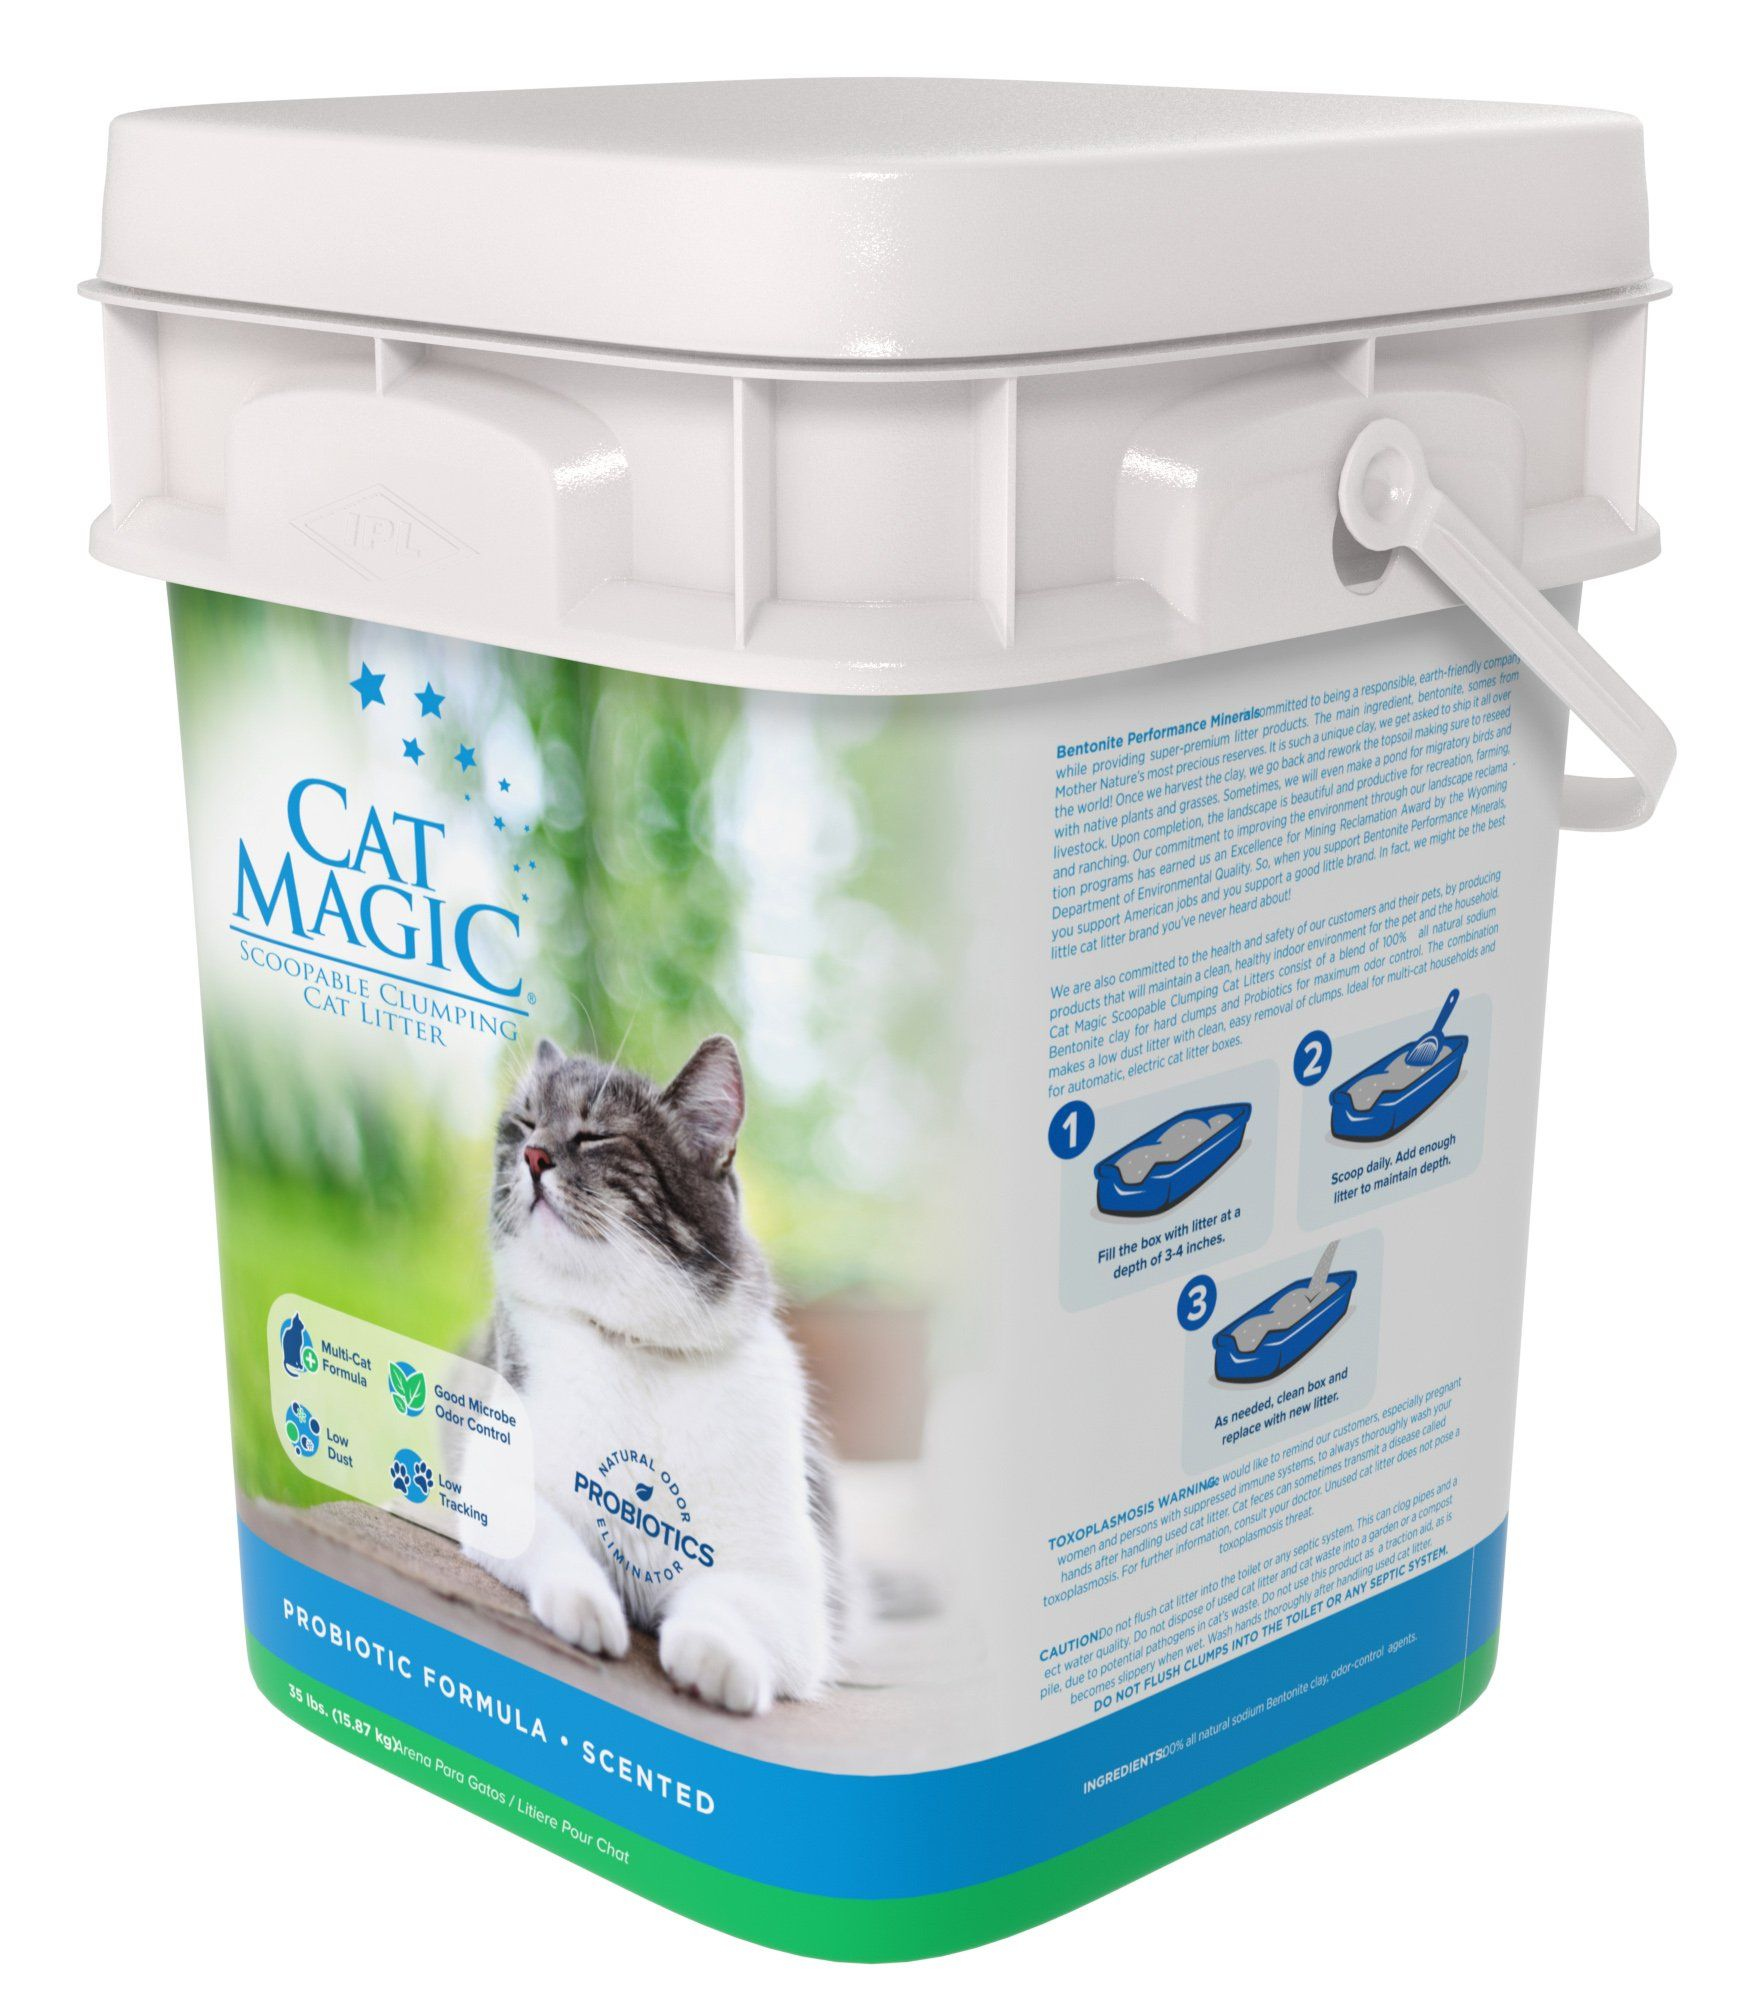 Cat Magic Scented Clumping Clay Cat Litter 35pound You Can Get More Details By Clicking On The Image This Is Clay Cat Litter Cat Litter Cat Pet Supplies